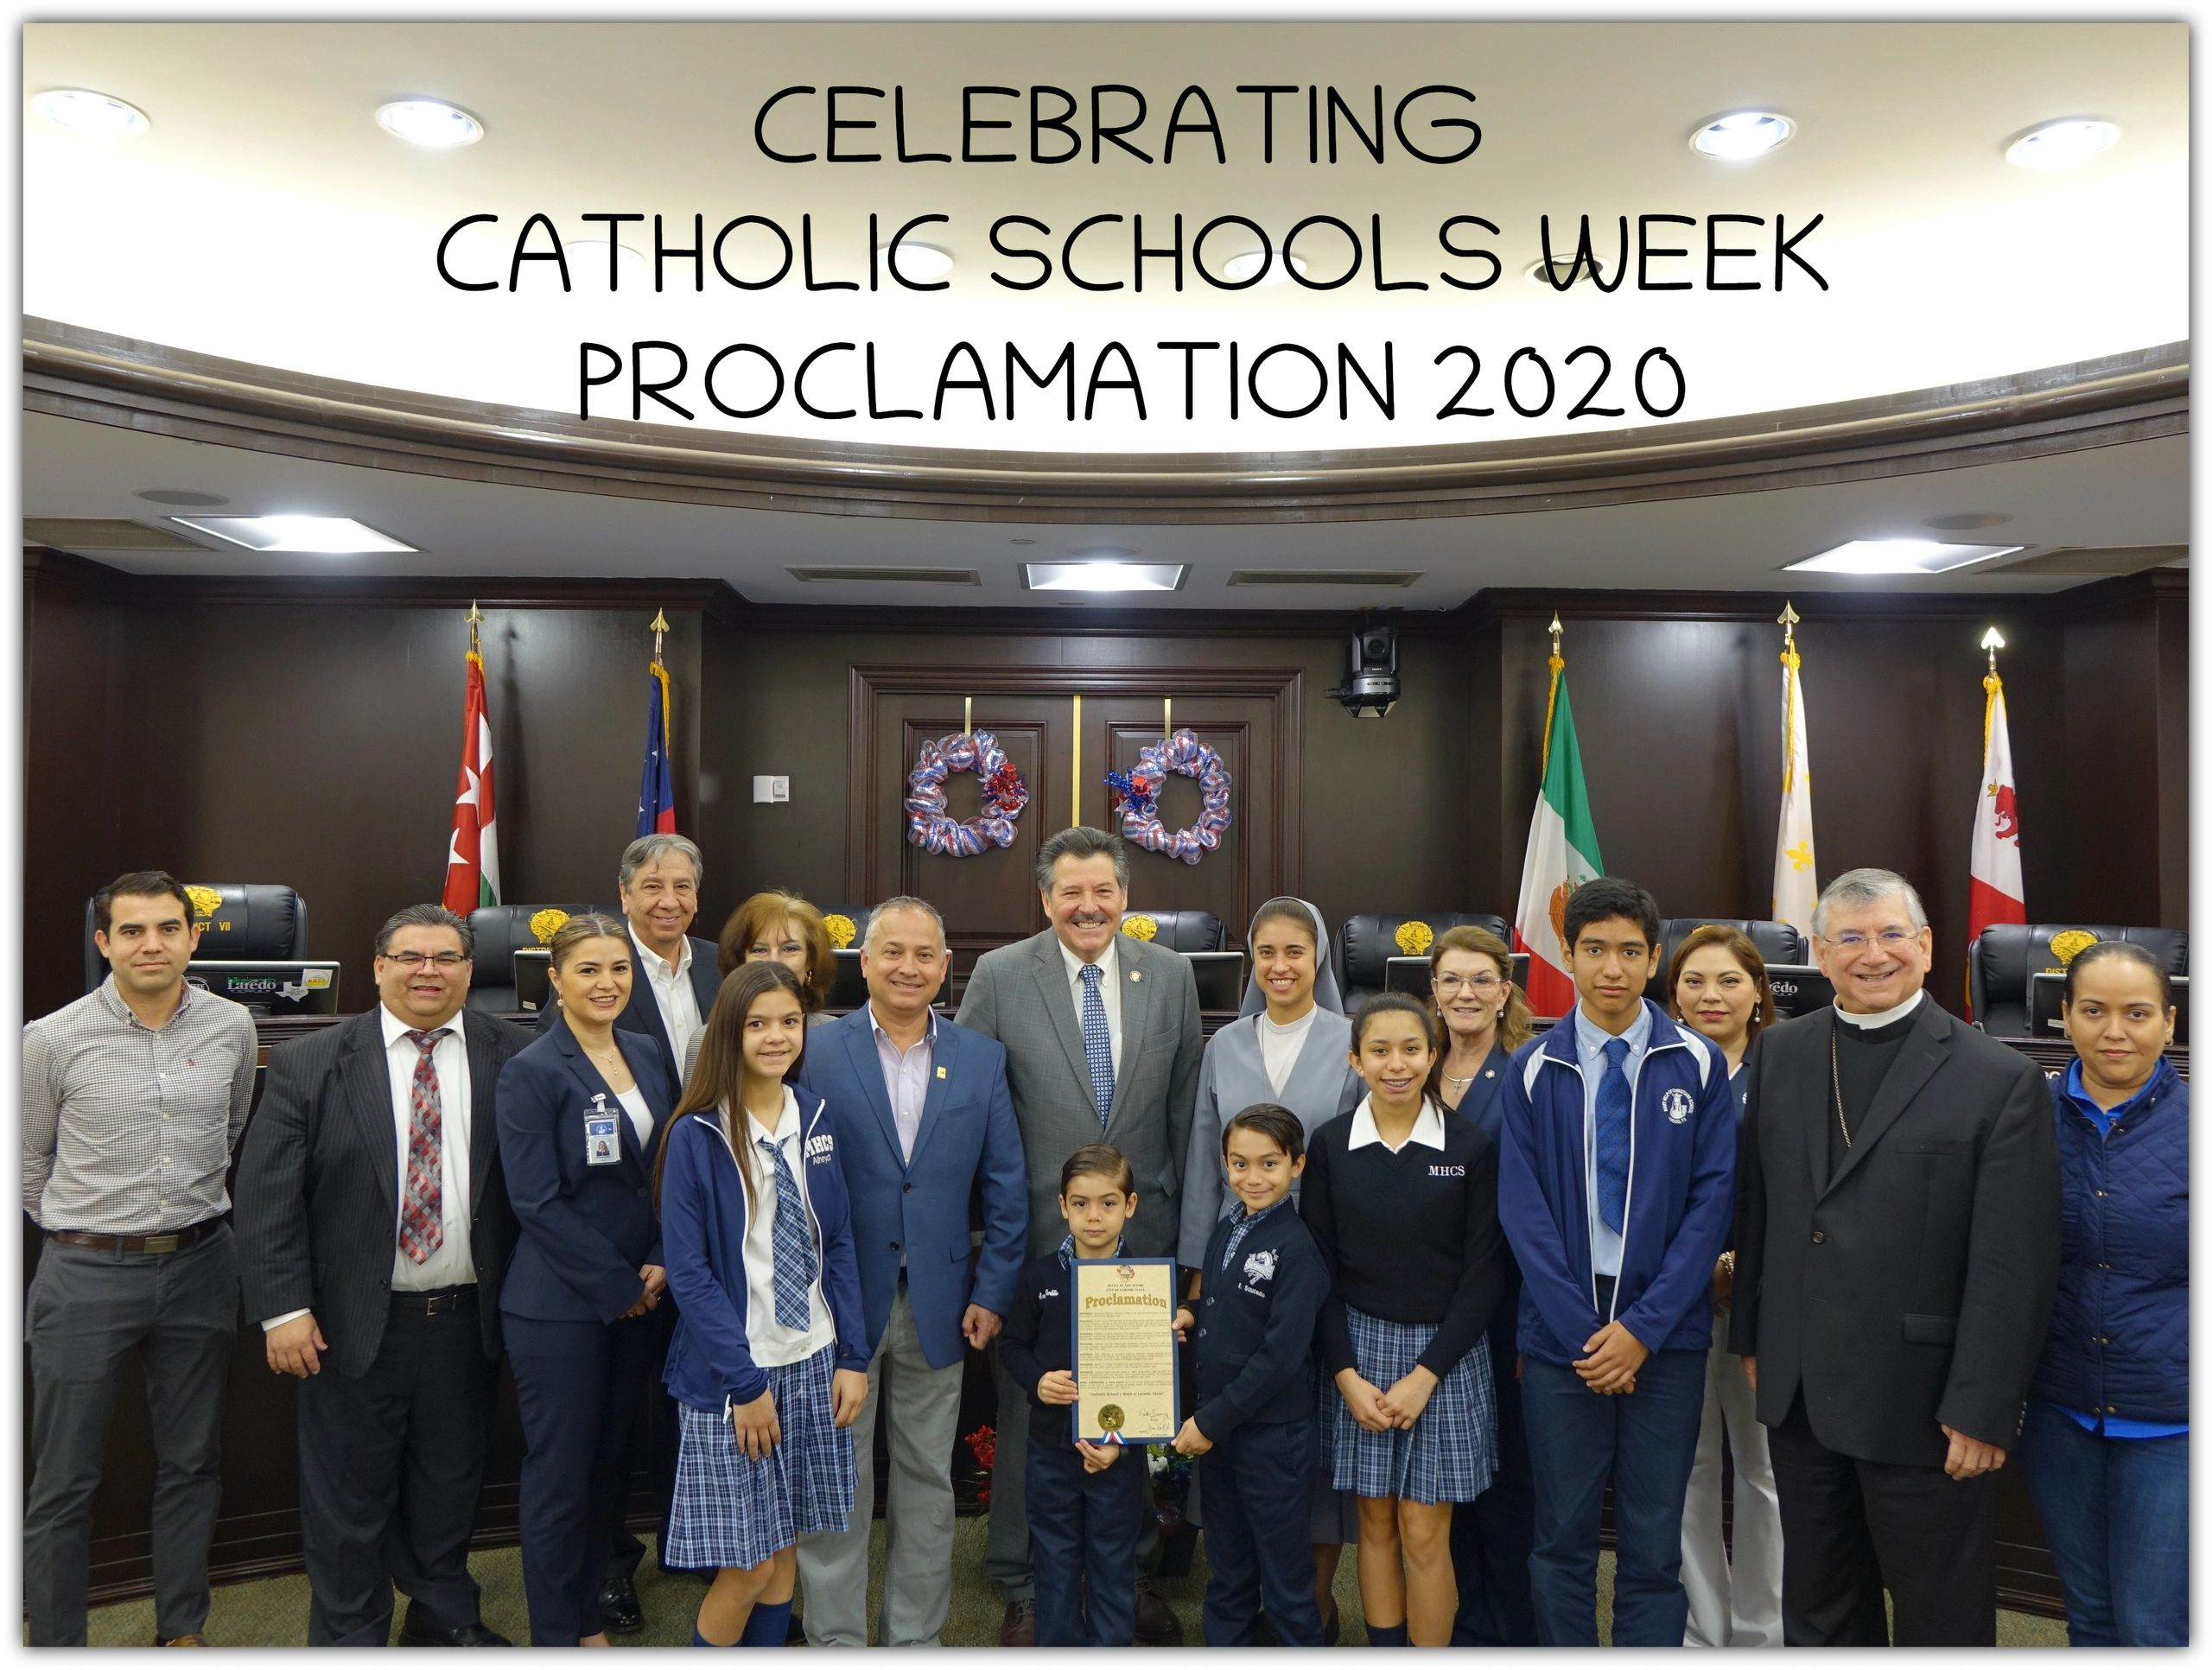 CSW Proclamation 2020